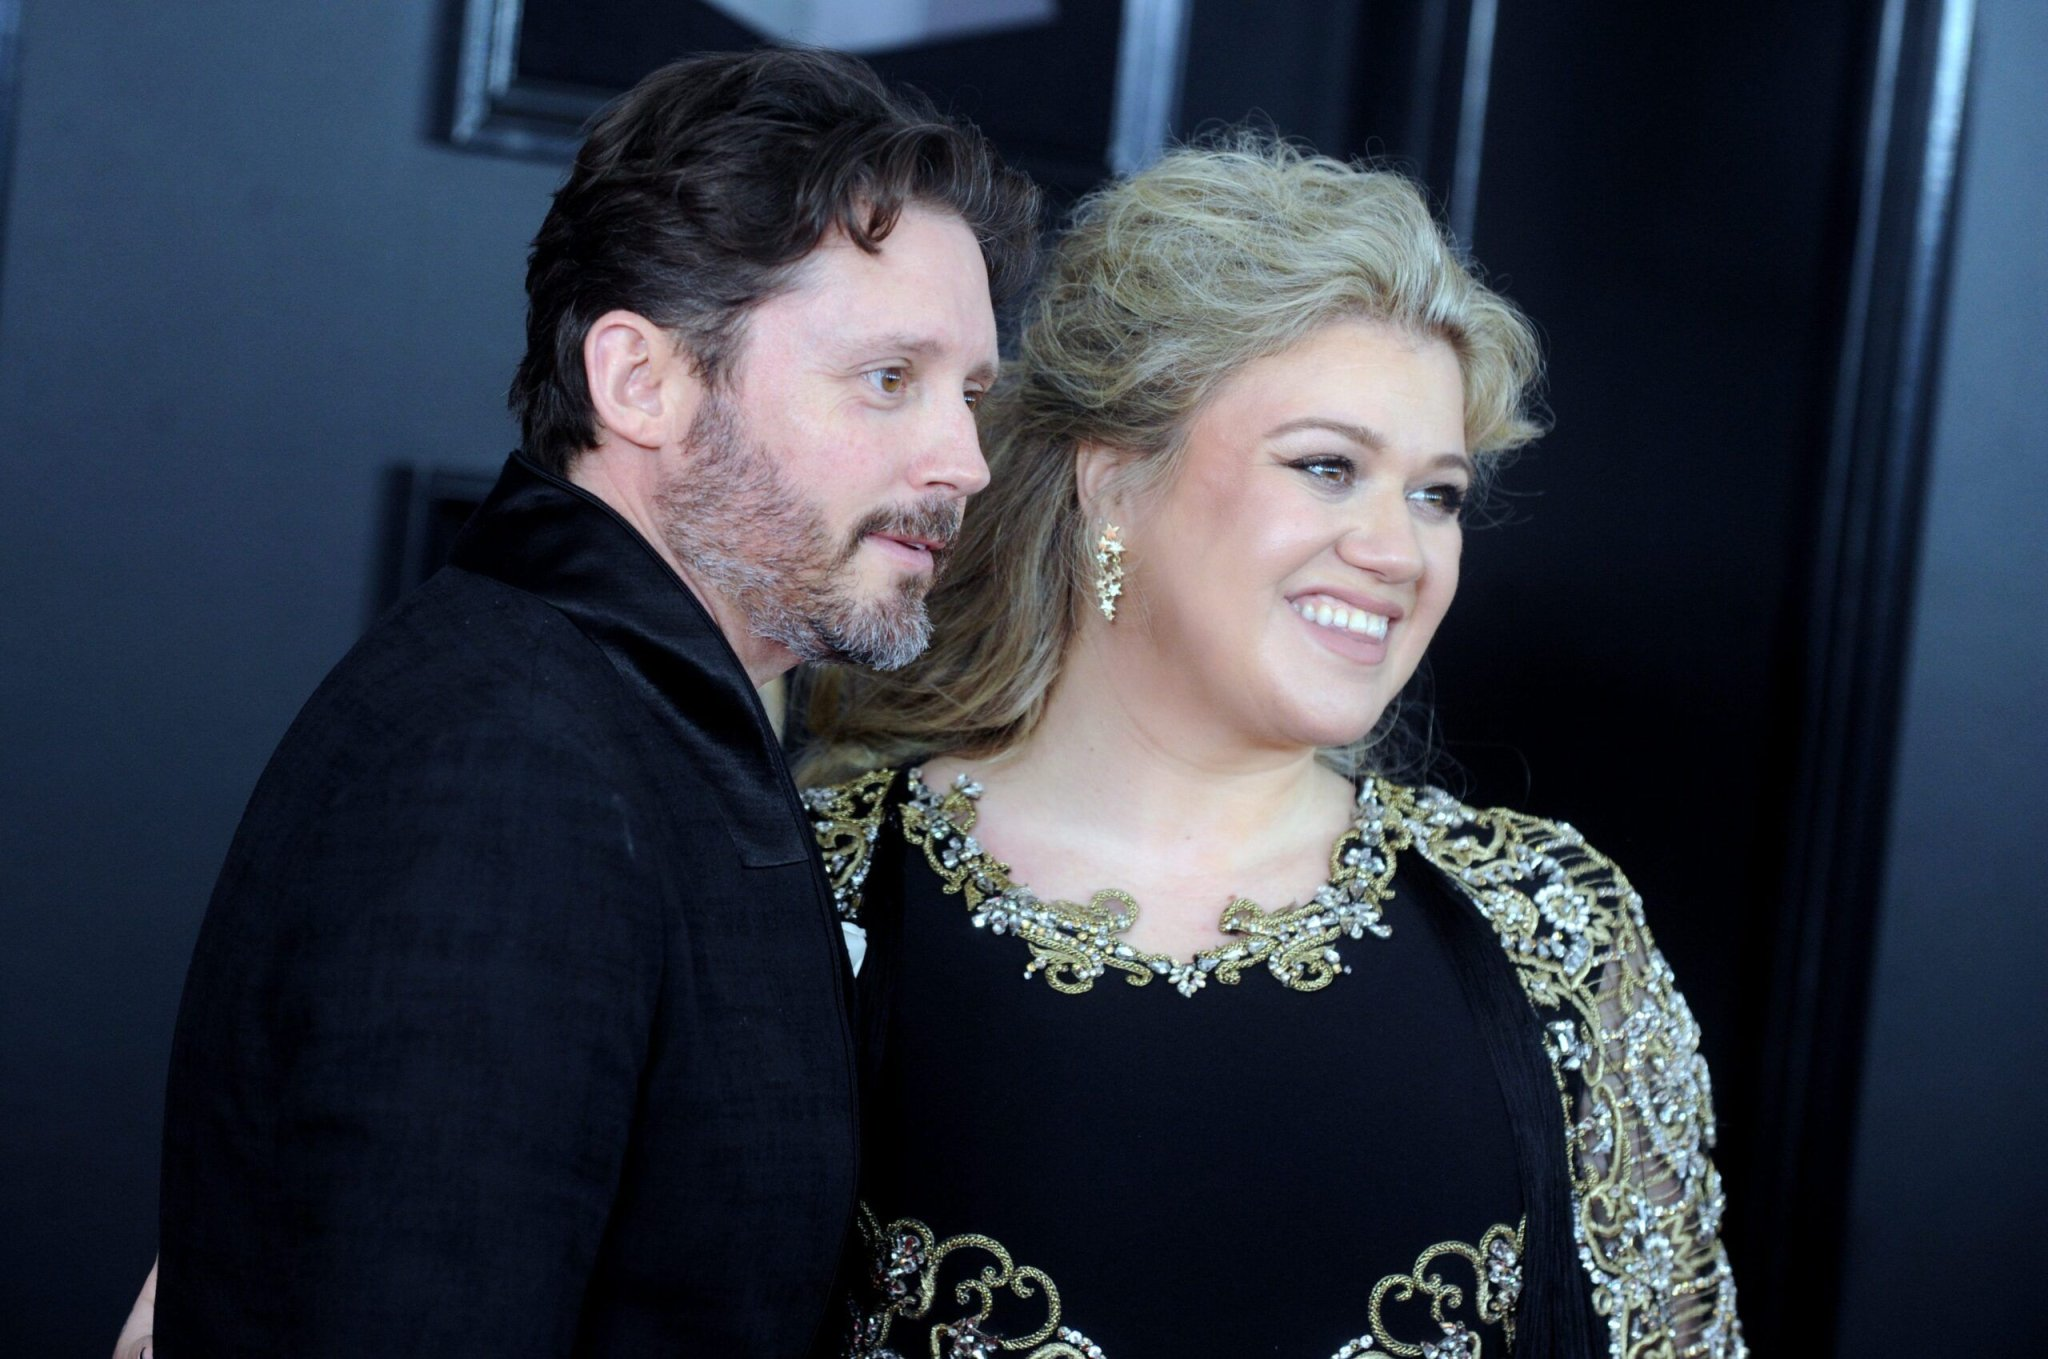 Kelly Clarkson Says Her Kids Have Had 'A Lot Of Help' From Therapists Amid Divorce - Fame10